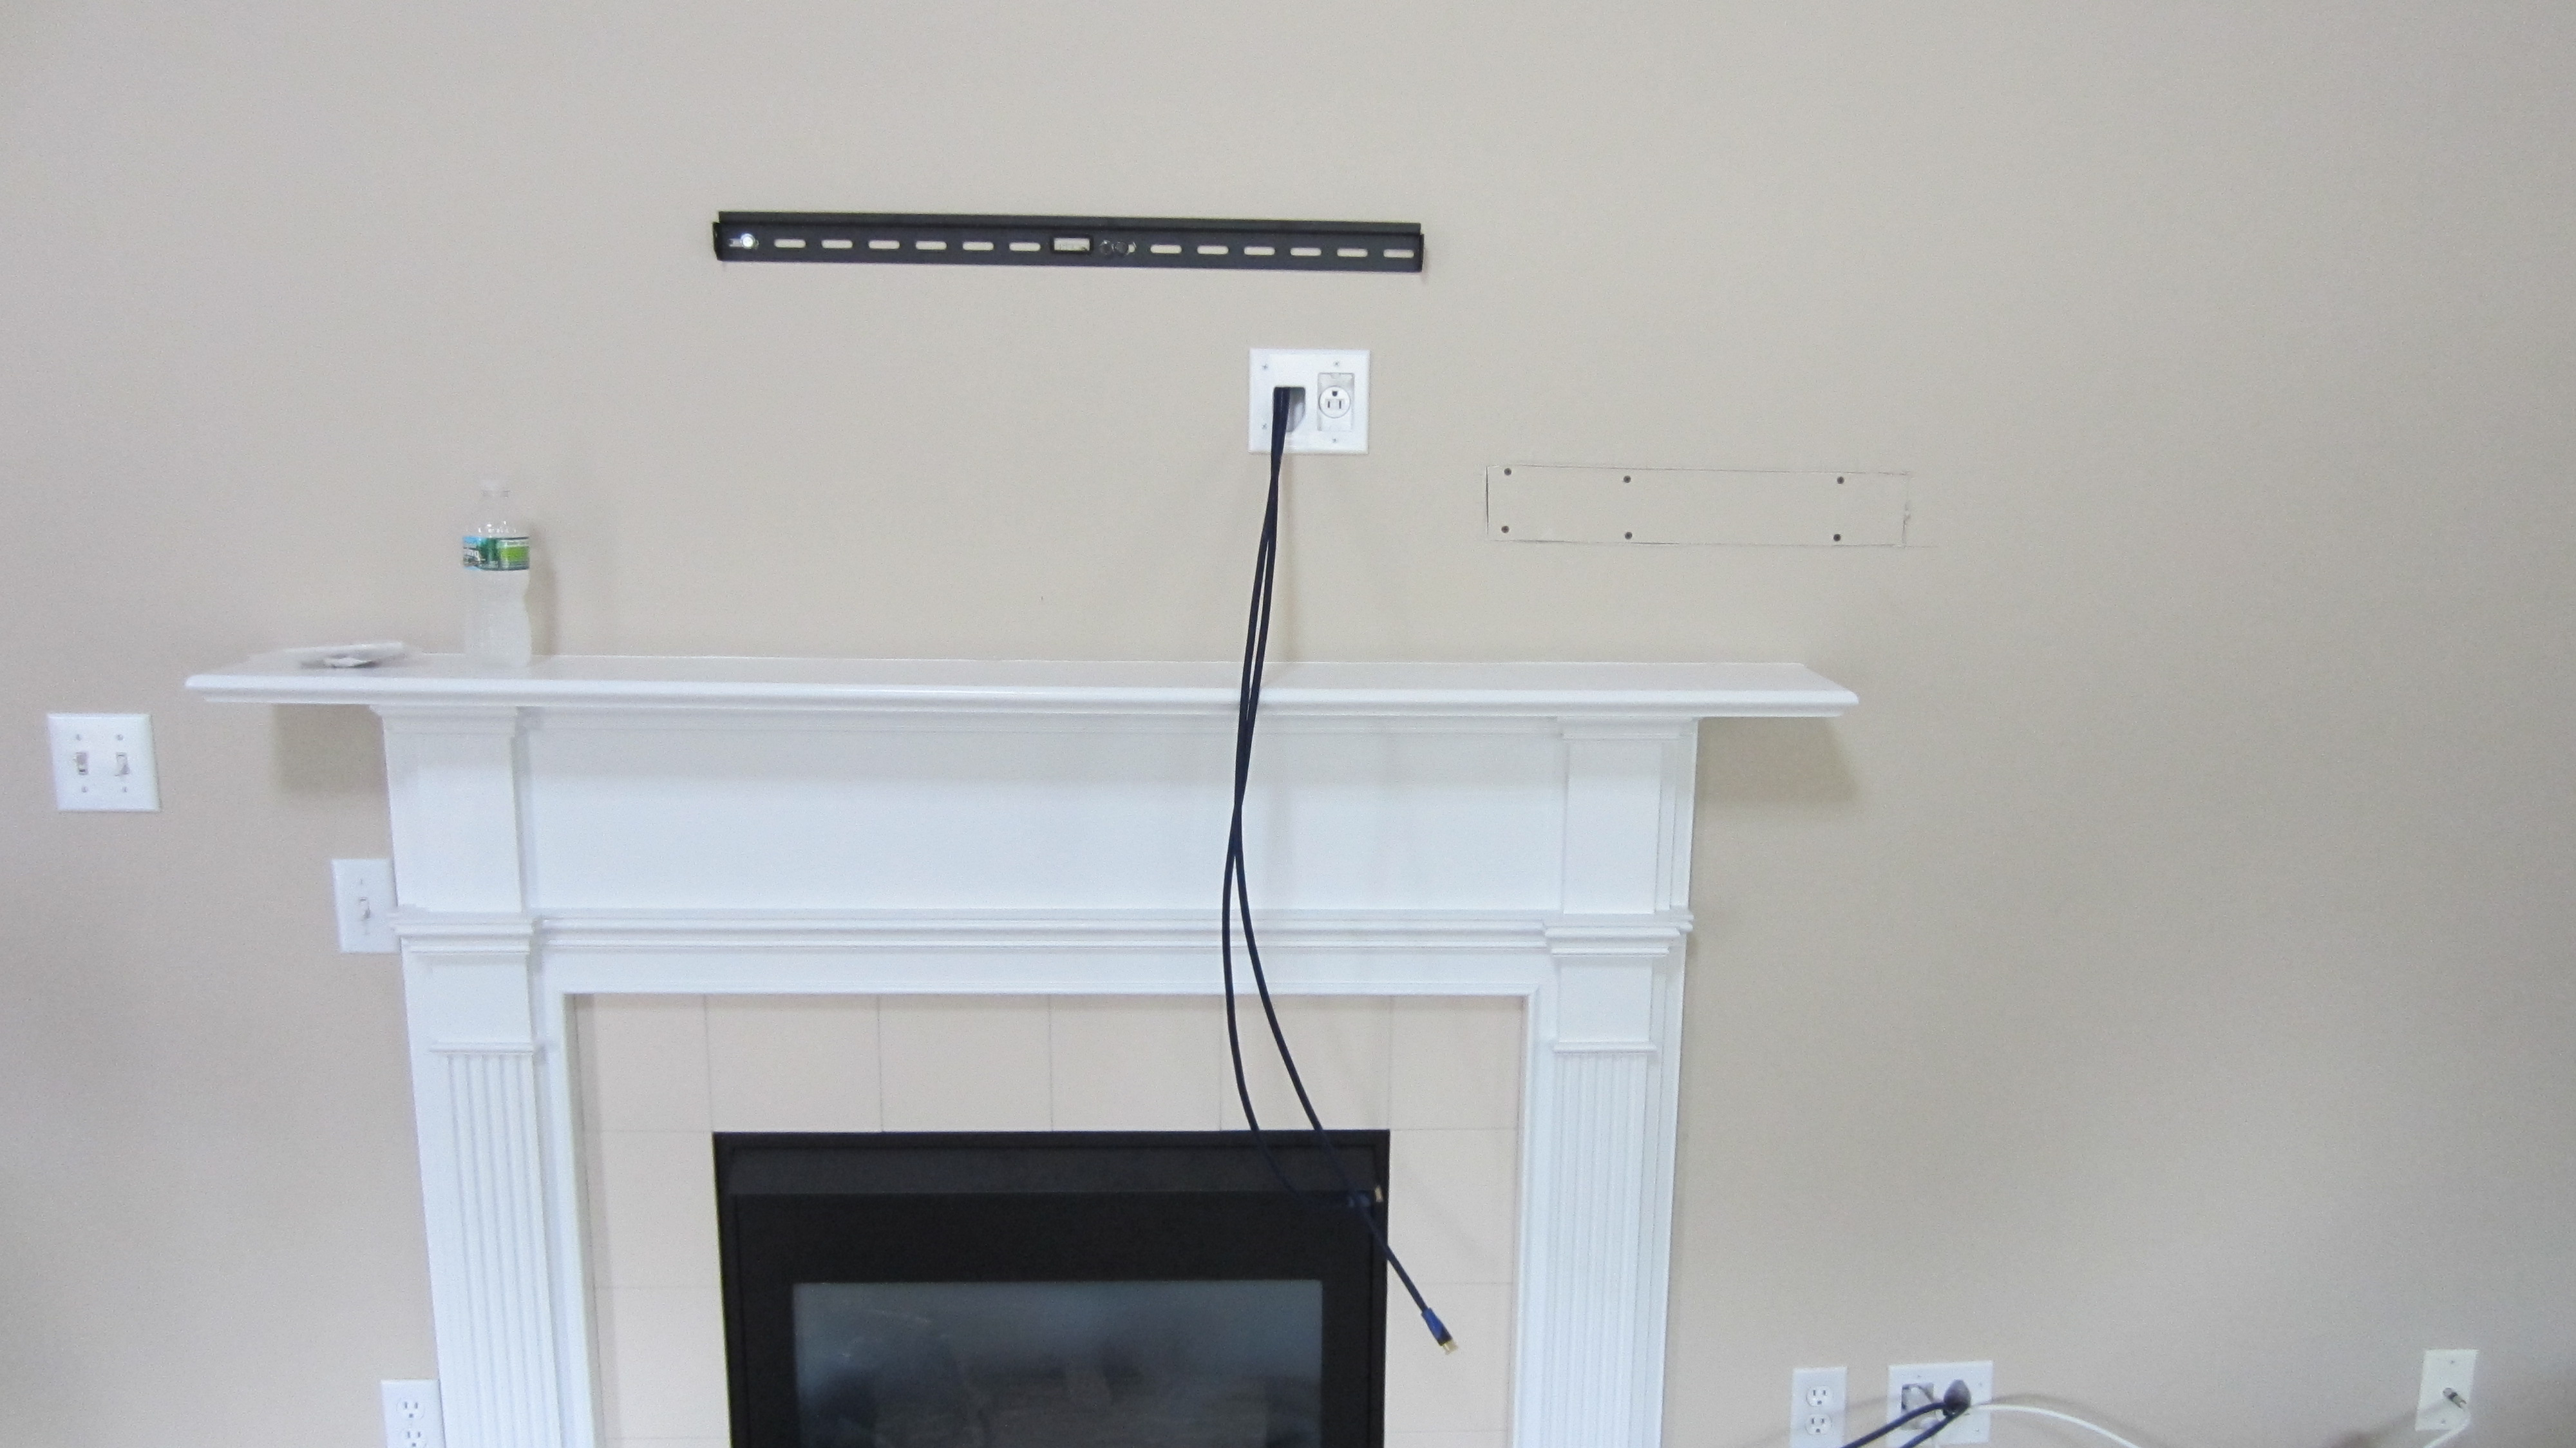 richeygroup | Home Theater Installation | Page 7